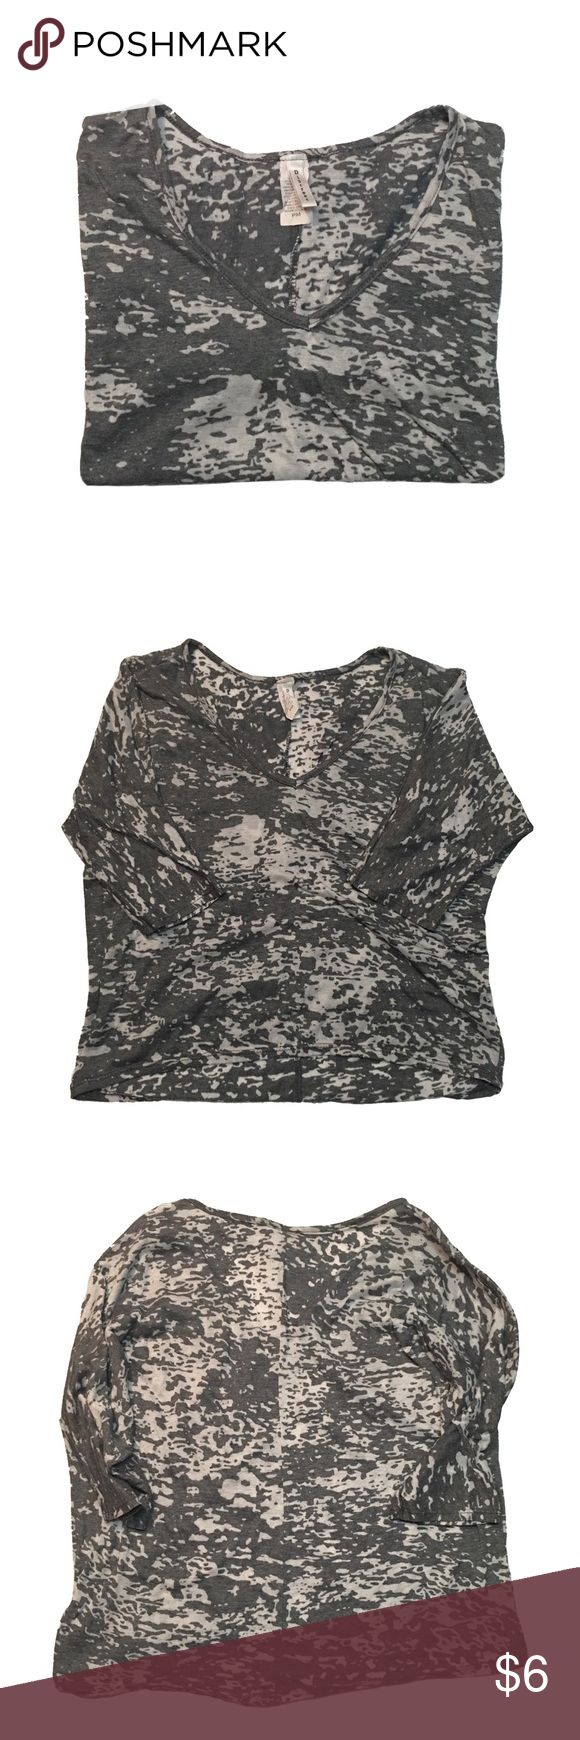 Grunge Top · Gray top bought from Marshall's. Grungy casual. Thin & lightweight. Loose elbow length sleeves. V-neck. Size medium petite - I'm a size small and it fits slouchy. Piling which isn't noticeable on the print. Used condition.   · These are photos of the actual item. Please review photos for flaws or signs of wear. I try my best to showcase and represent the true product. Tops